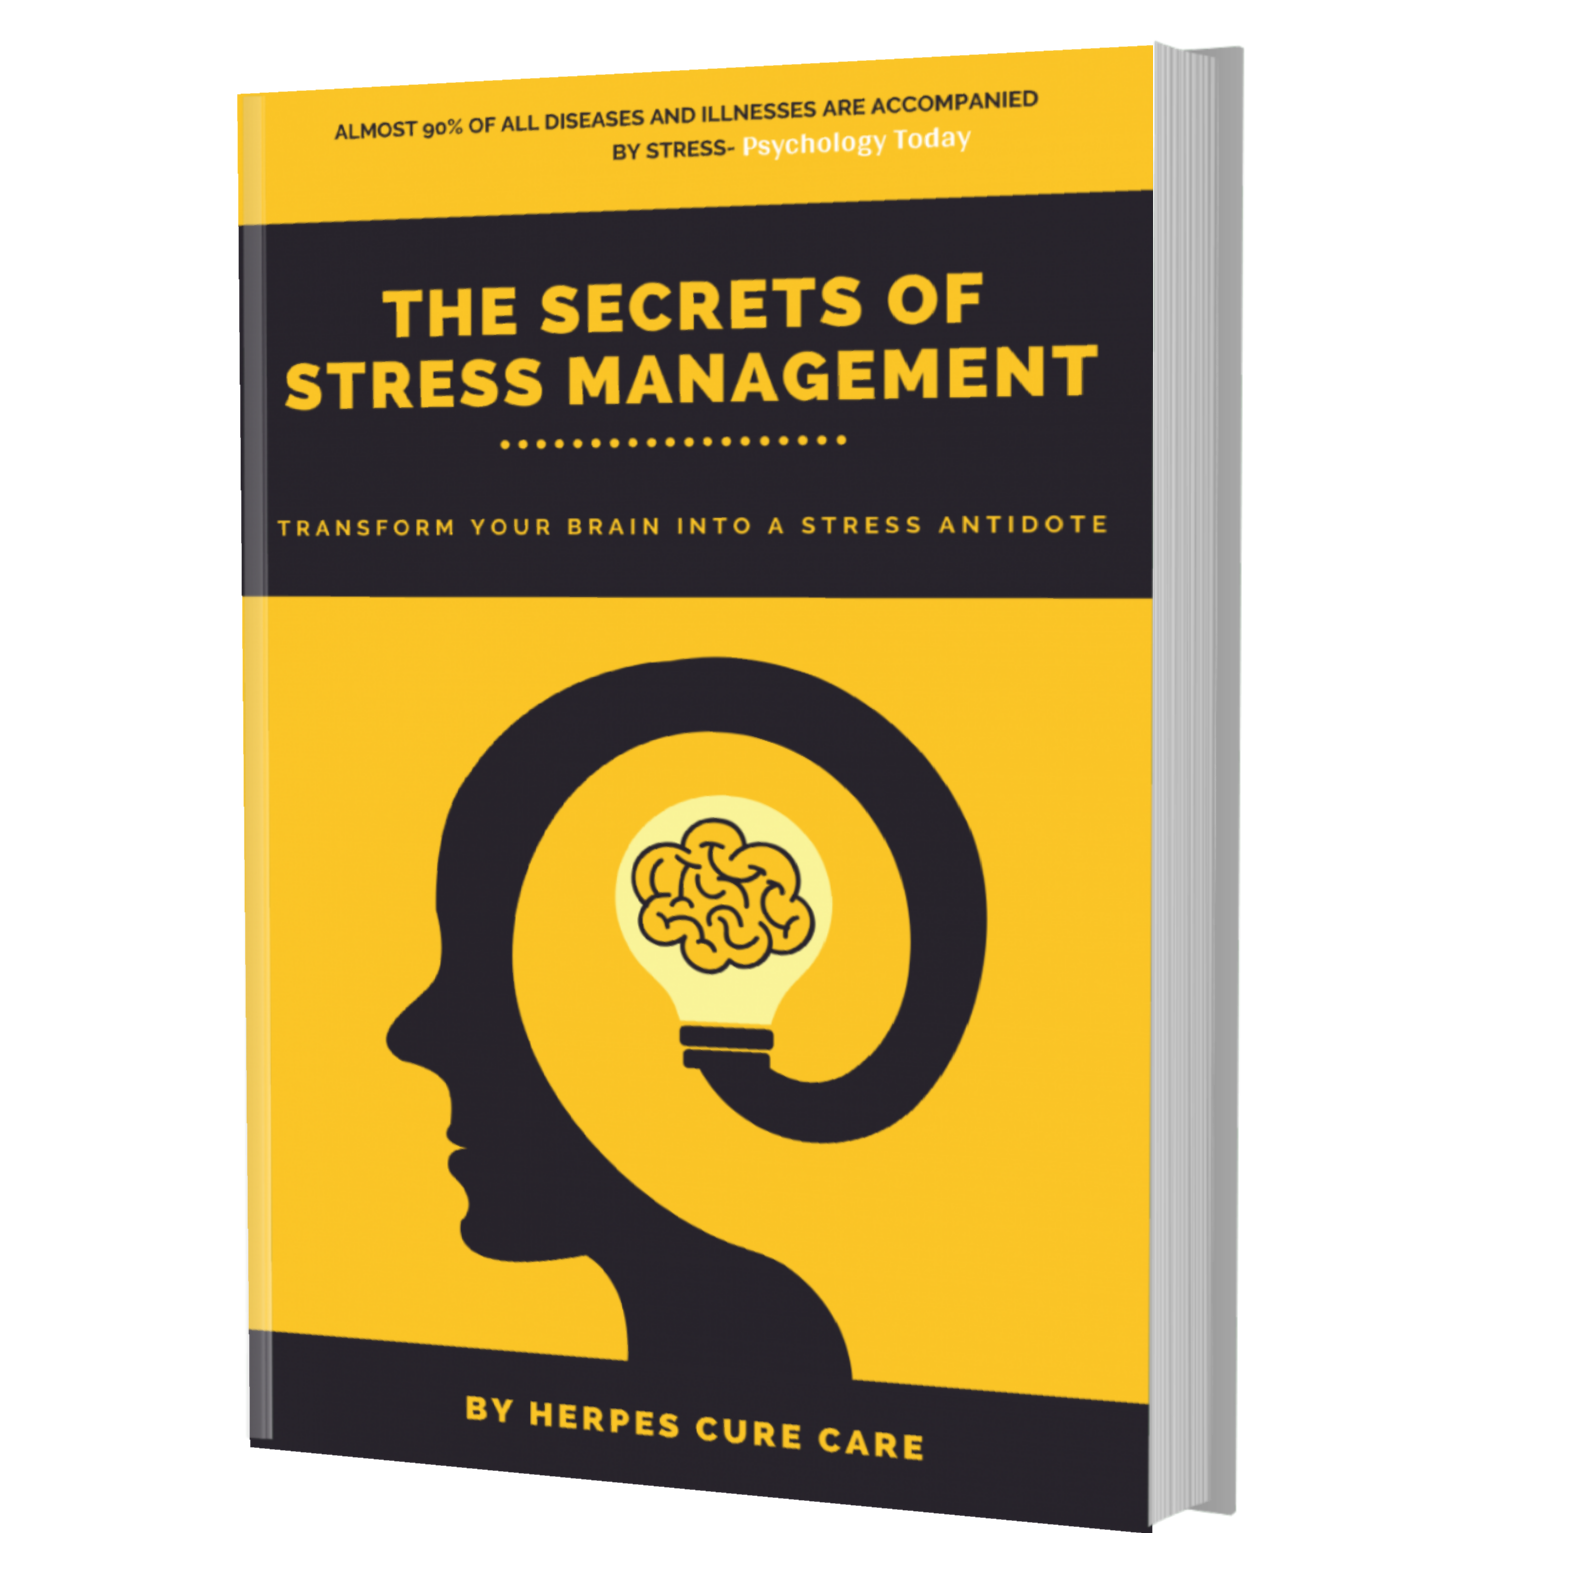 the secrets of stress management